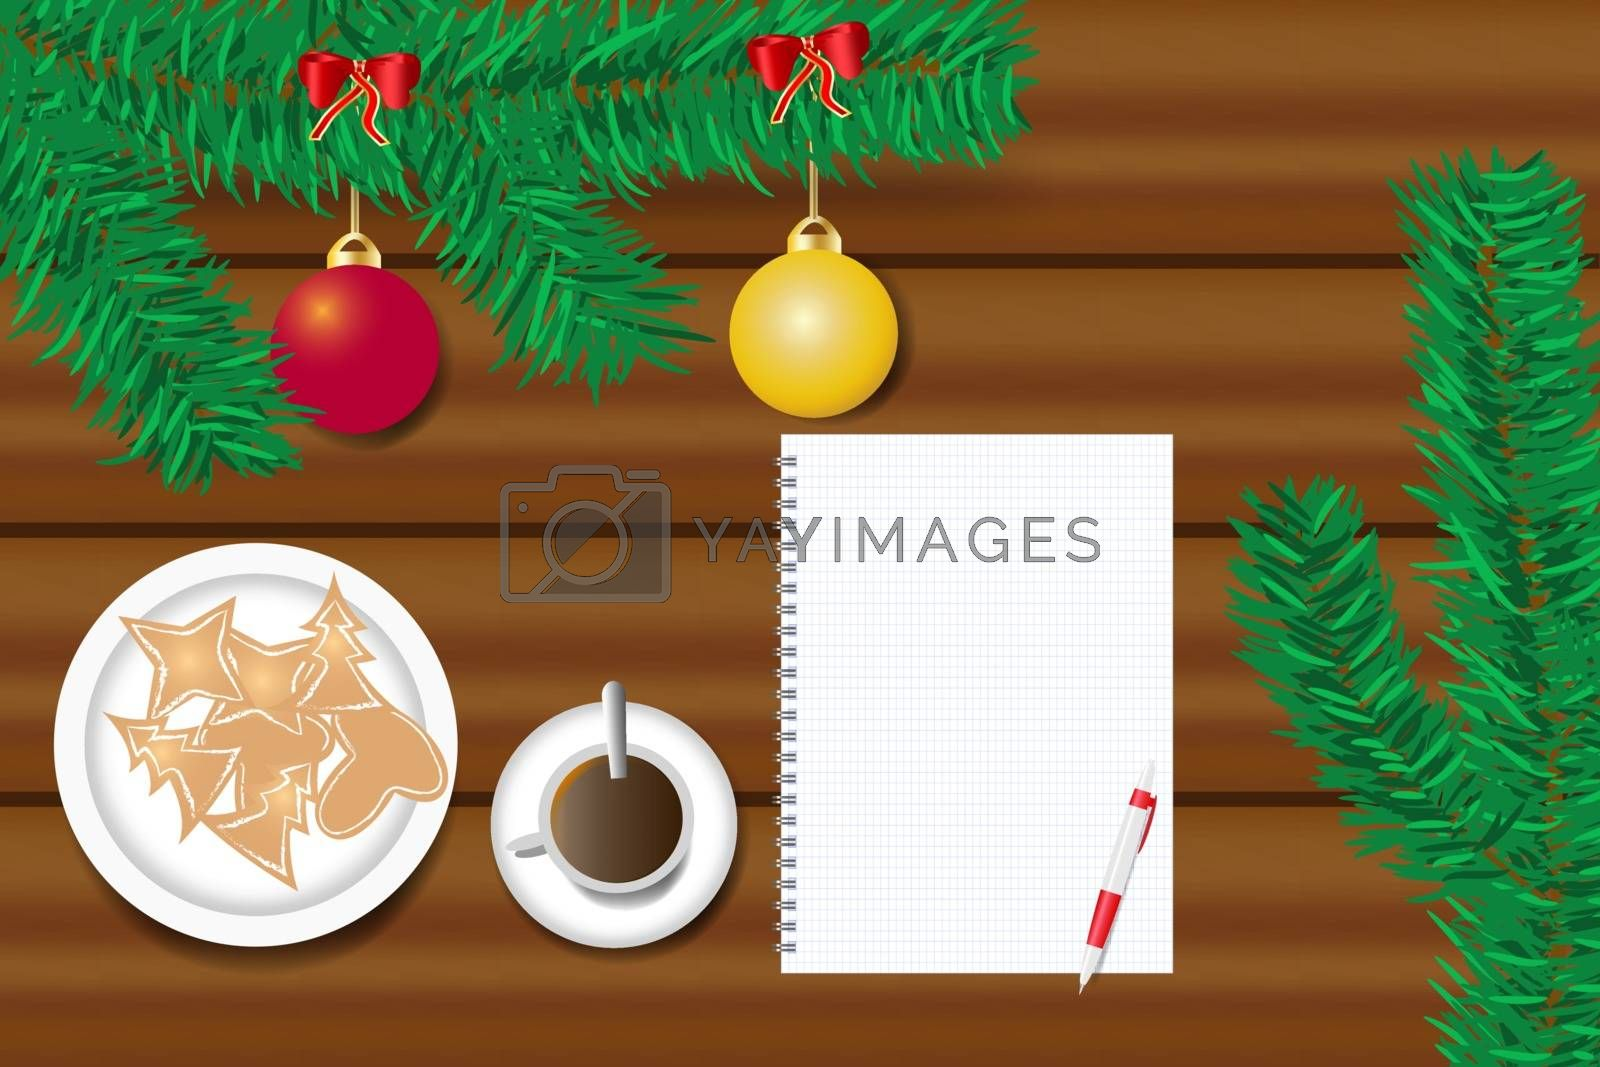 Top view of the table with ornate branch of Christmas tree, Christmas sweets on the plate and  cup of coffee. Blank paper is ready for your text.